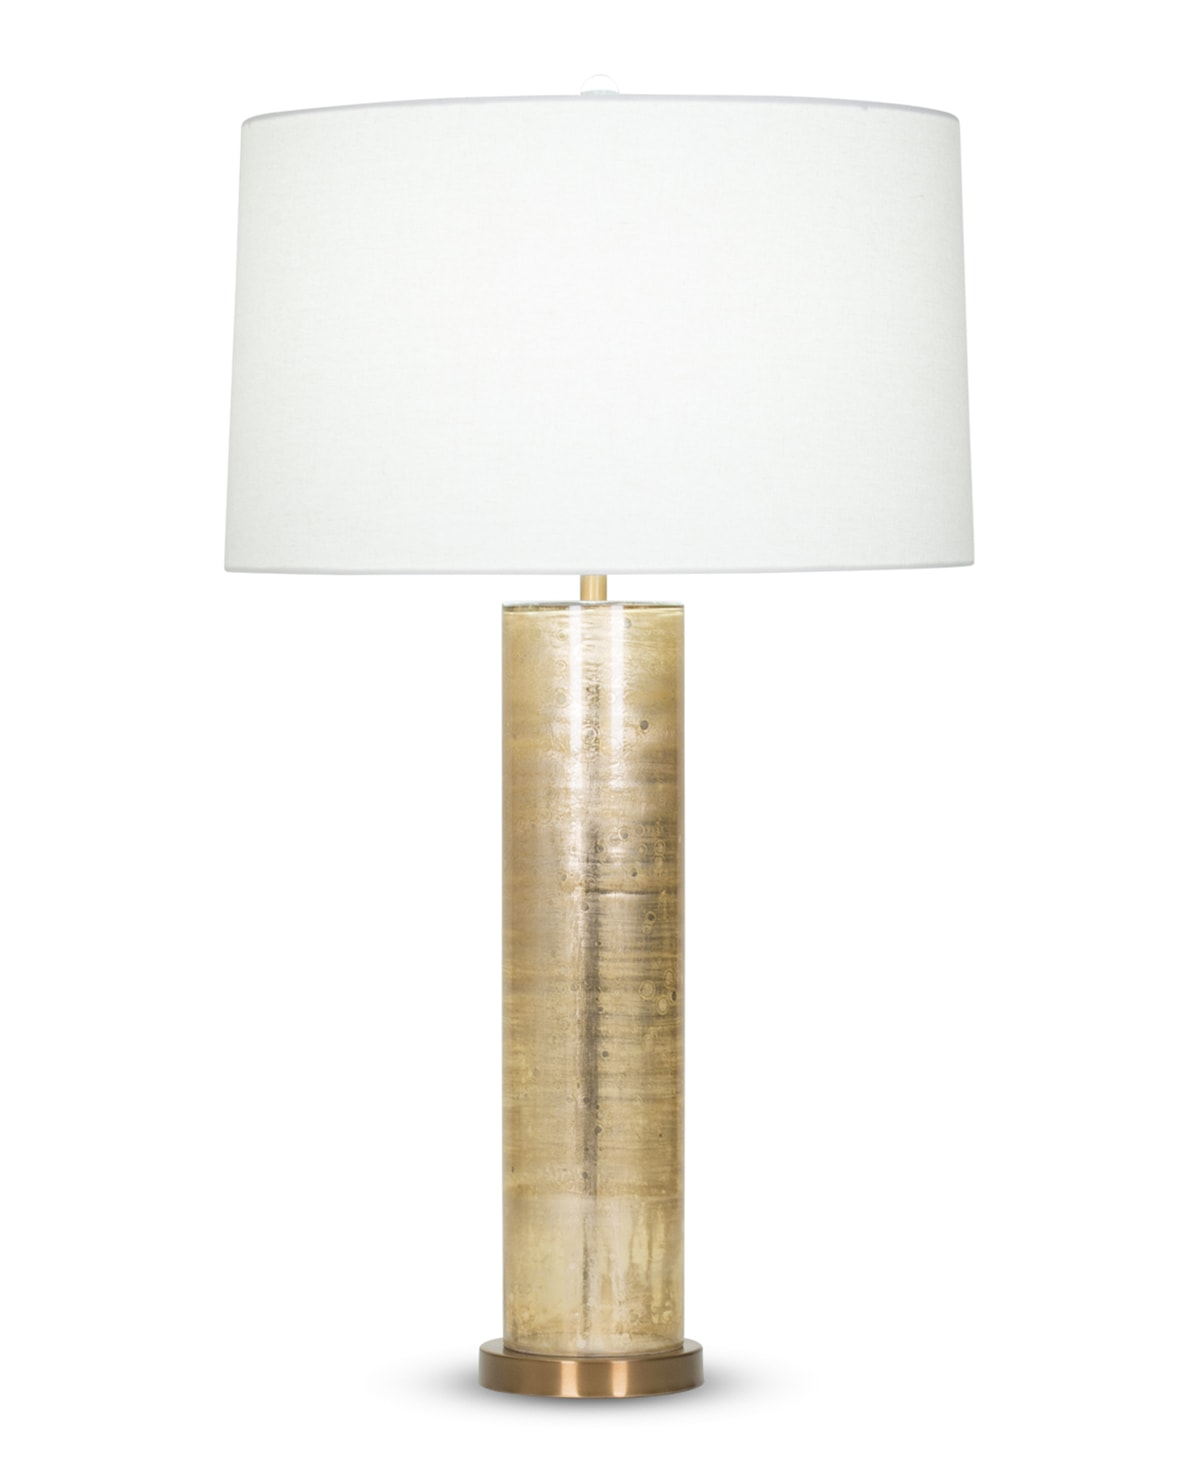 FlowDecor Melville Table Lamp in mouth-blown glass with gold metallic finish and off-white linen tapered drum shade (# 4034)